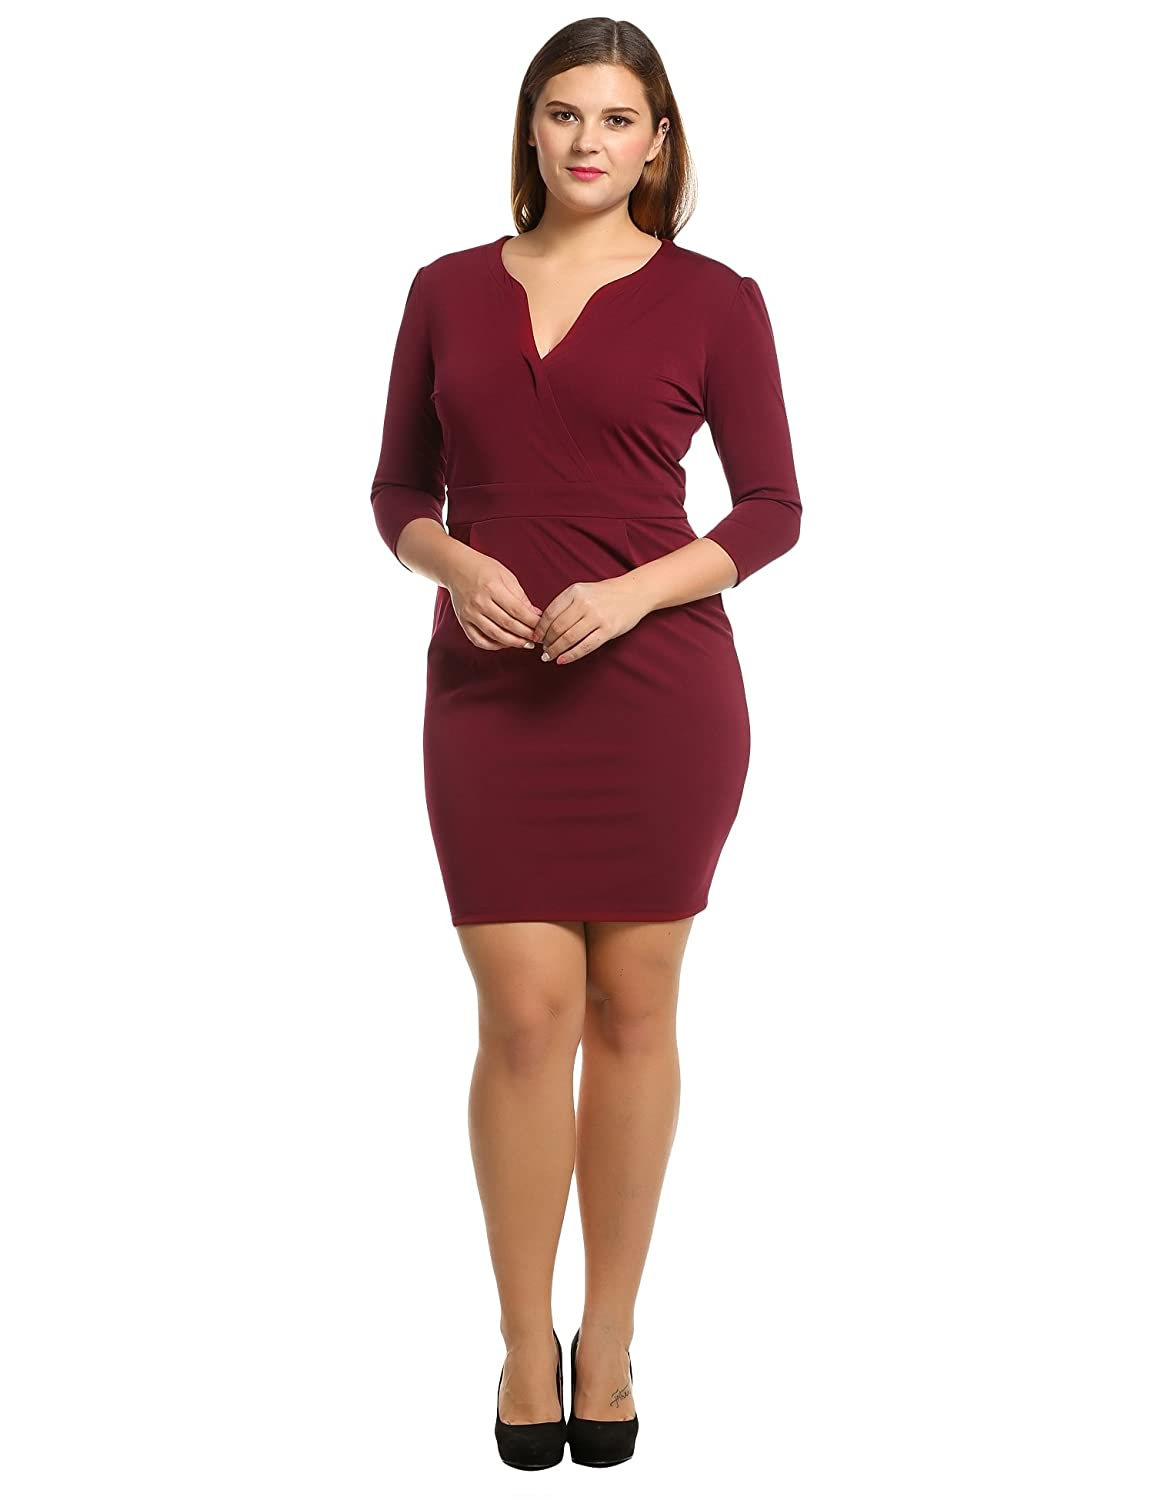 Meaneor Women's Plus Size 3/4 Sleeve V-Neck Retro Bodycon Pencil Dress (L-4XL) *AMH005358